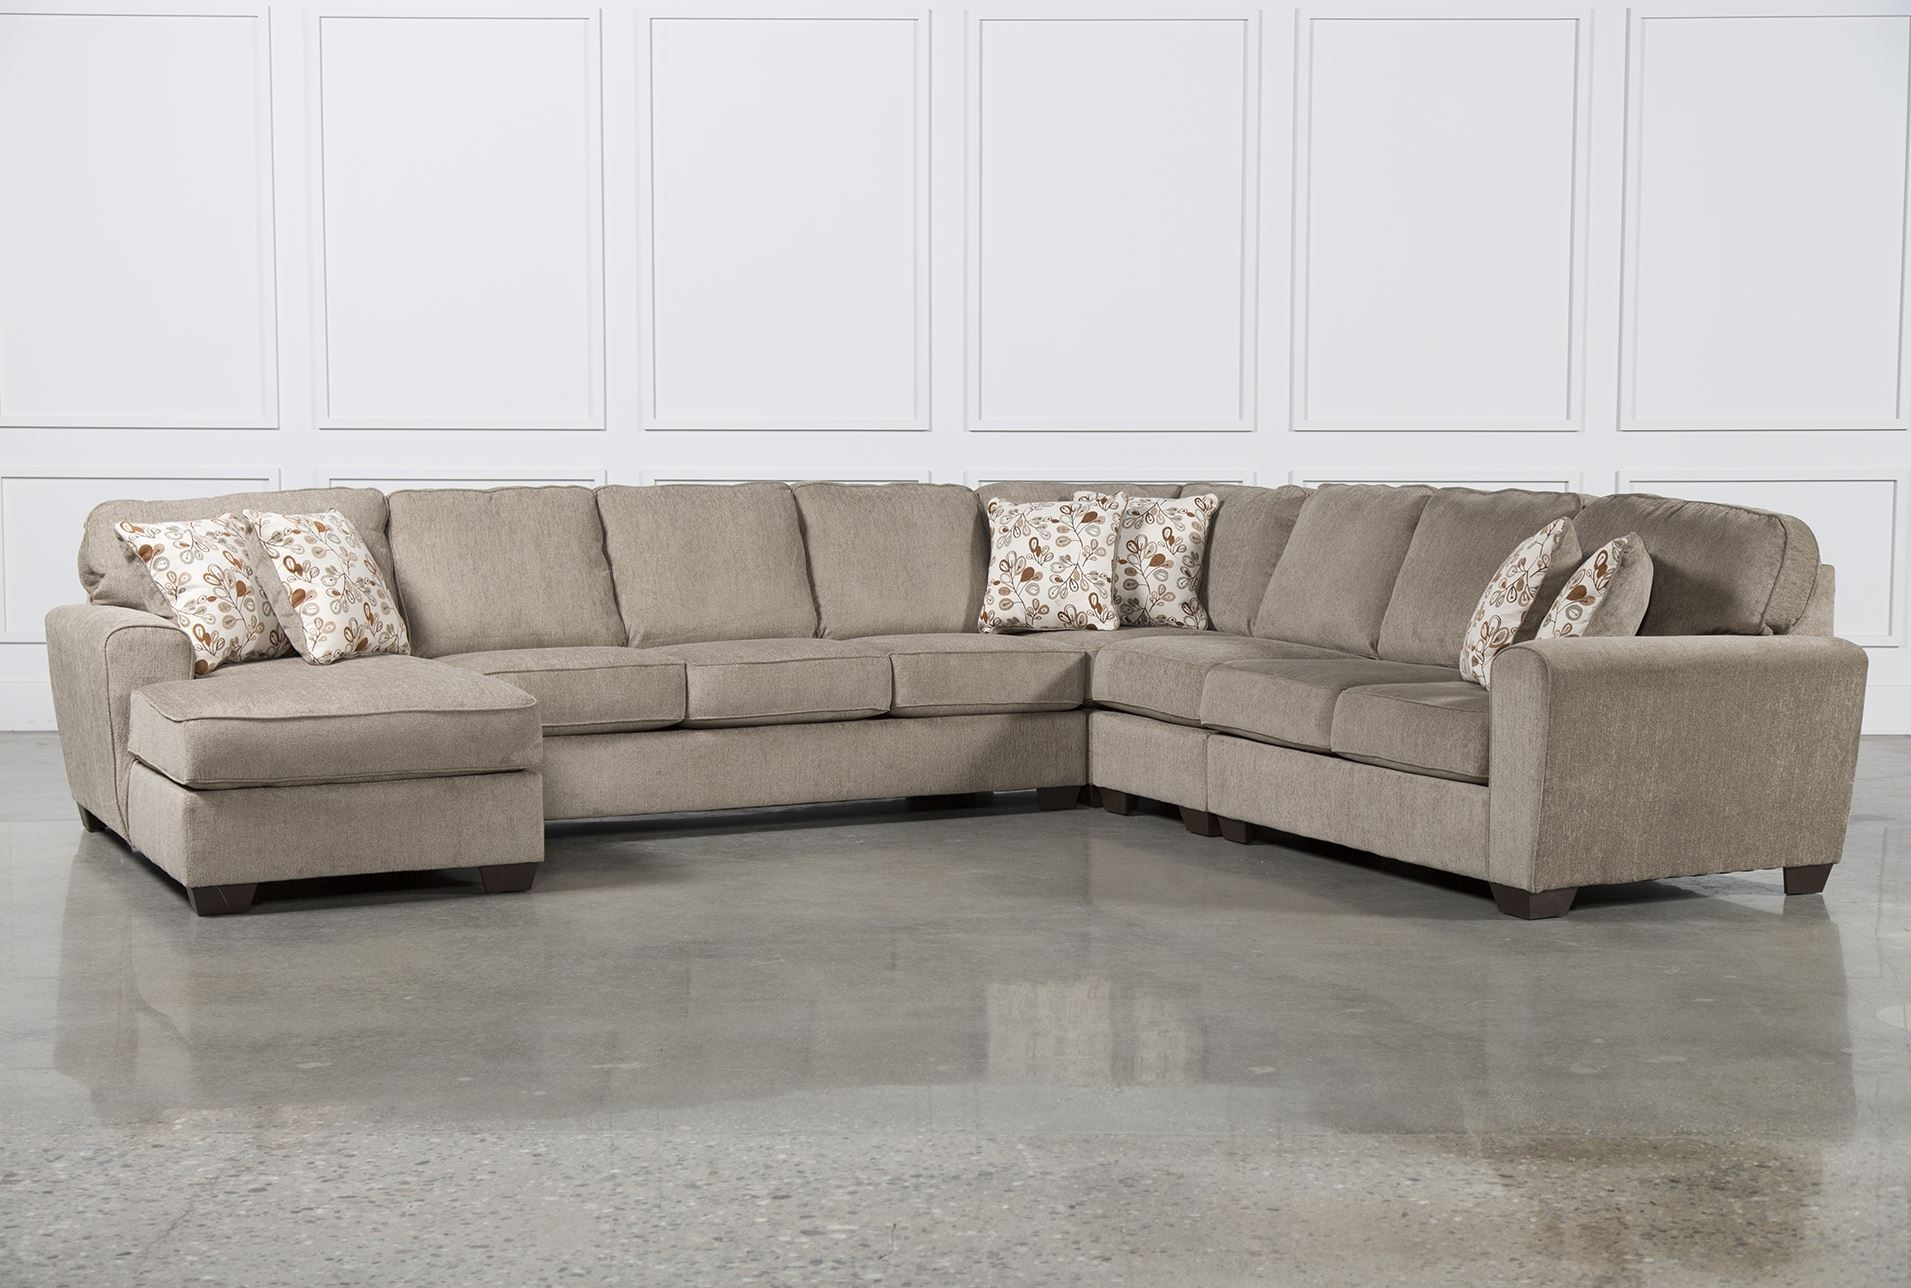 Best Ideas Of Laf Chaise On Gordon 3 Piece Sectional W Laf Chaise regarding Gordon 3 Piece Sectionals With Raf Chaise (Image 6 of 30)